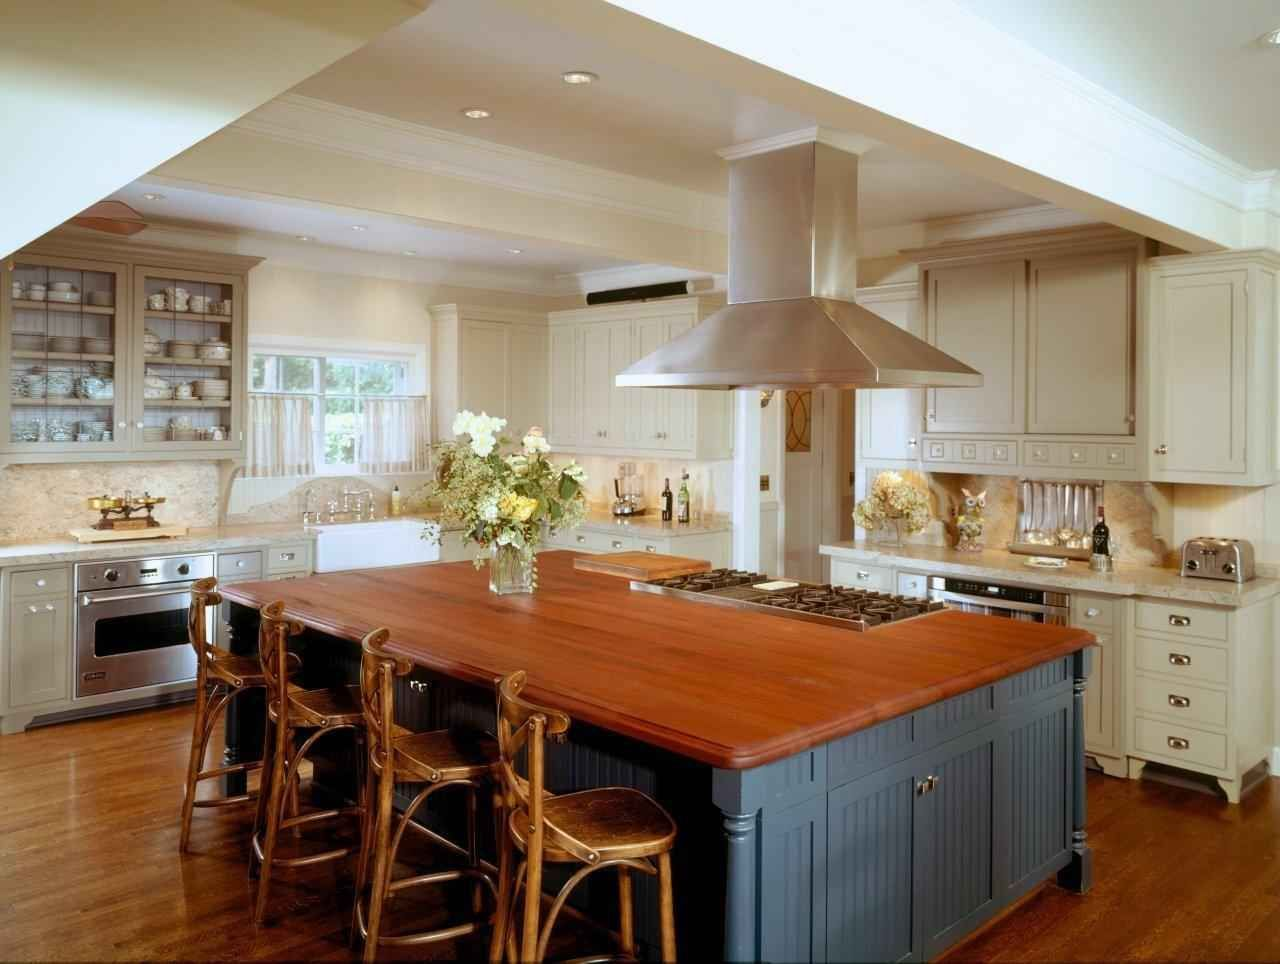 Like The Counter Vs Island Contrast  Dream Home  Pinterest Amazing Islands Kitchen Designs Design Inspiration